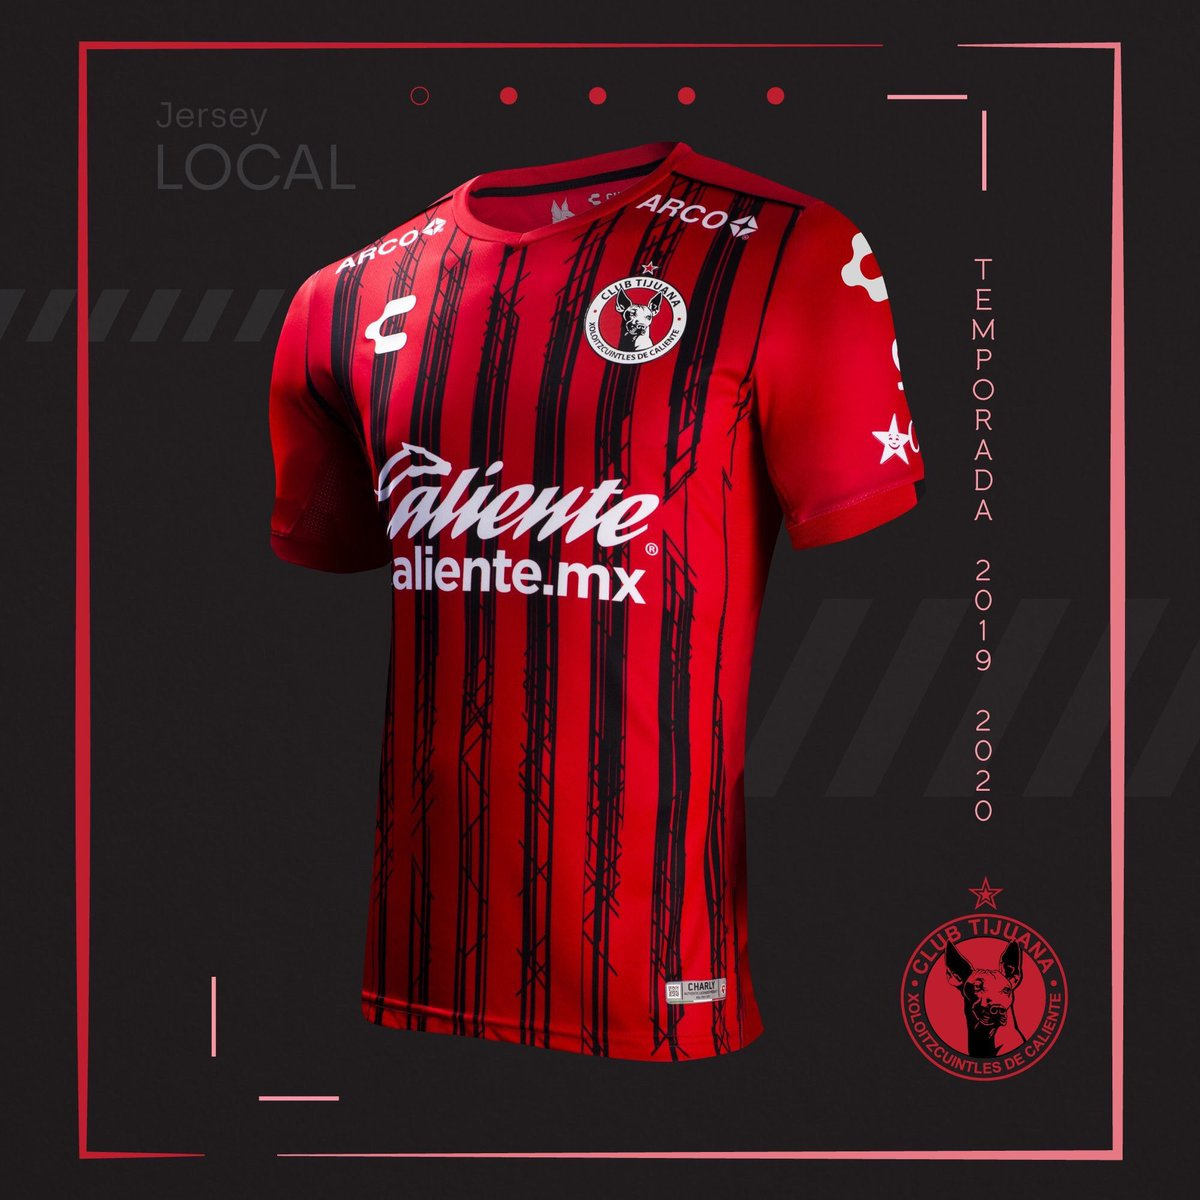 d560c20d2 ... saw some on fans up close and thought the red was off. IDK. Lol. The  white ones I don't like at all though. #Xolos  #LigaMXengpic.twitter.com/0Yvll0nnx0